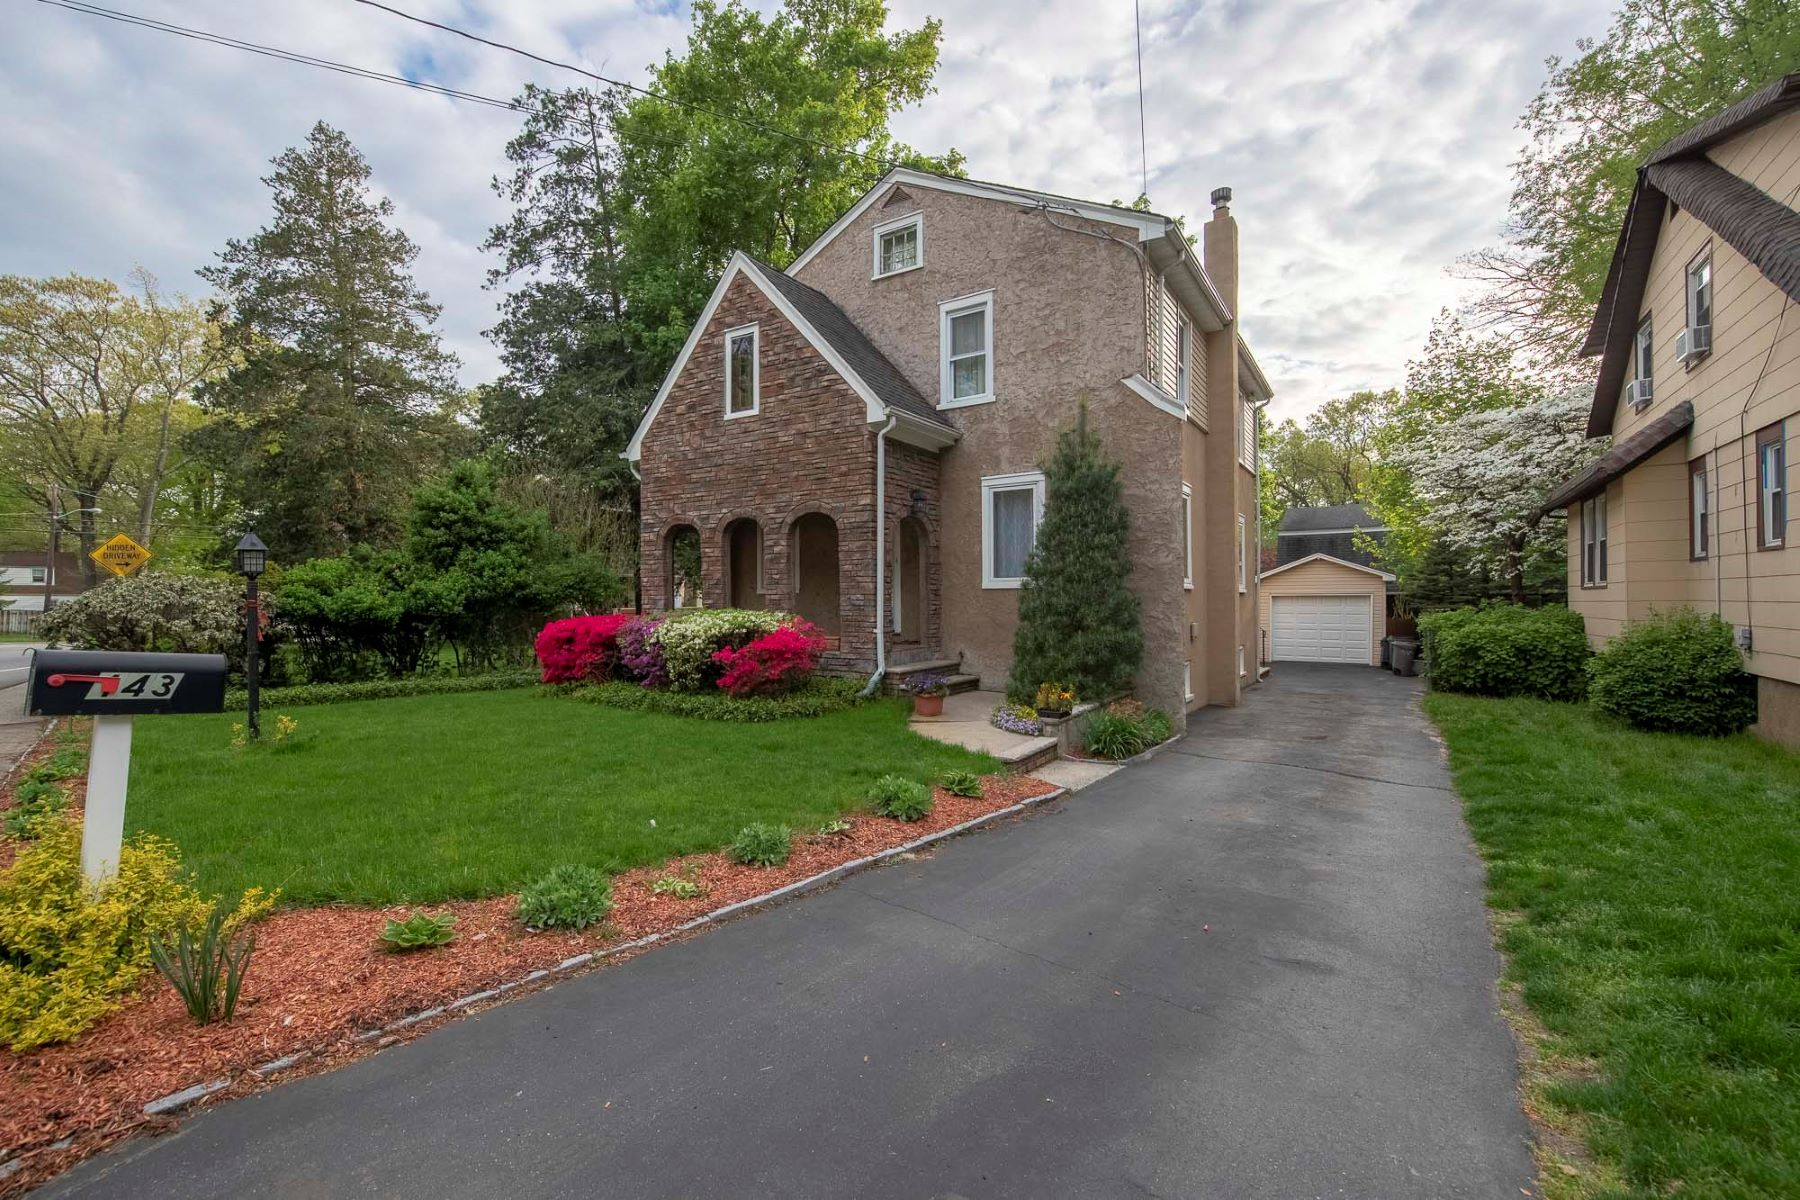 Single Family Homes for Sale at Great Opportunity 143 Kinderkamack Road, Hillsdale, New Jersey 07642 United States